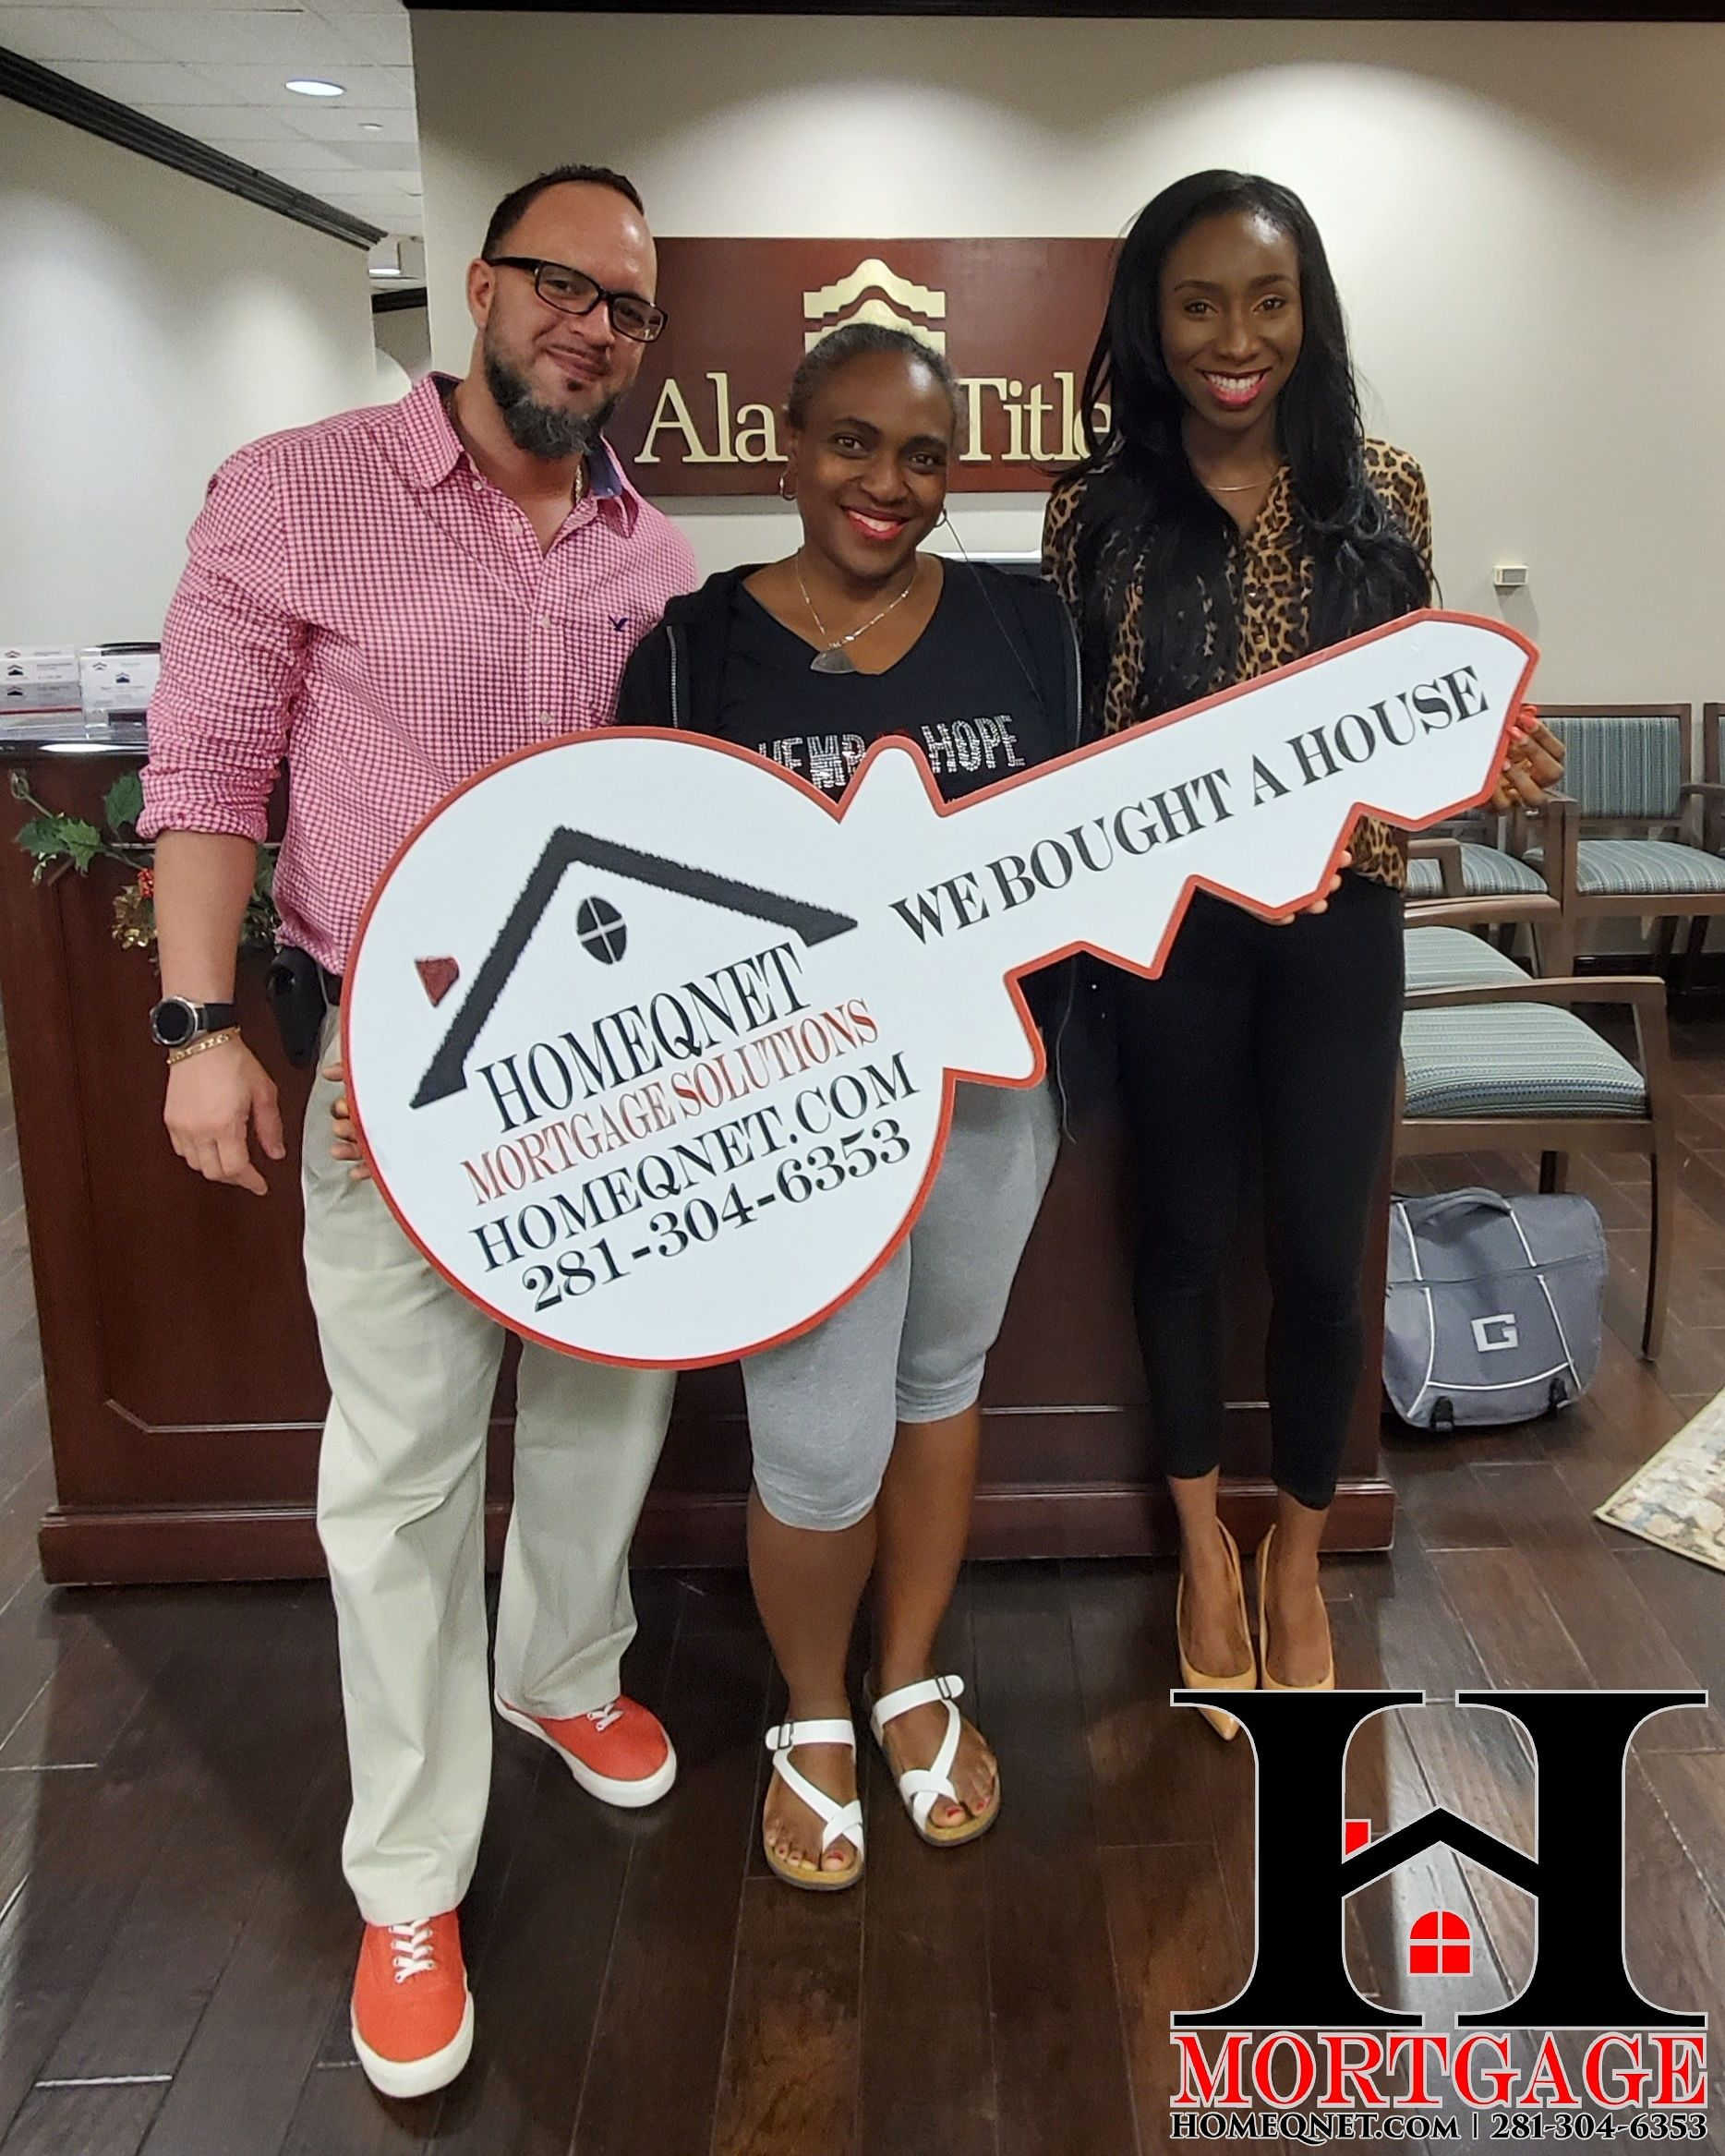 Congratulations to mrs ekpecham on her home purchase